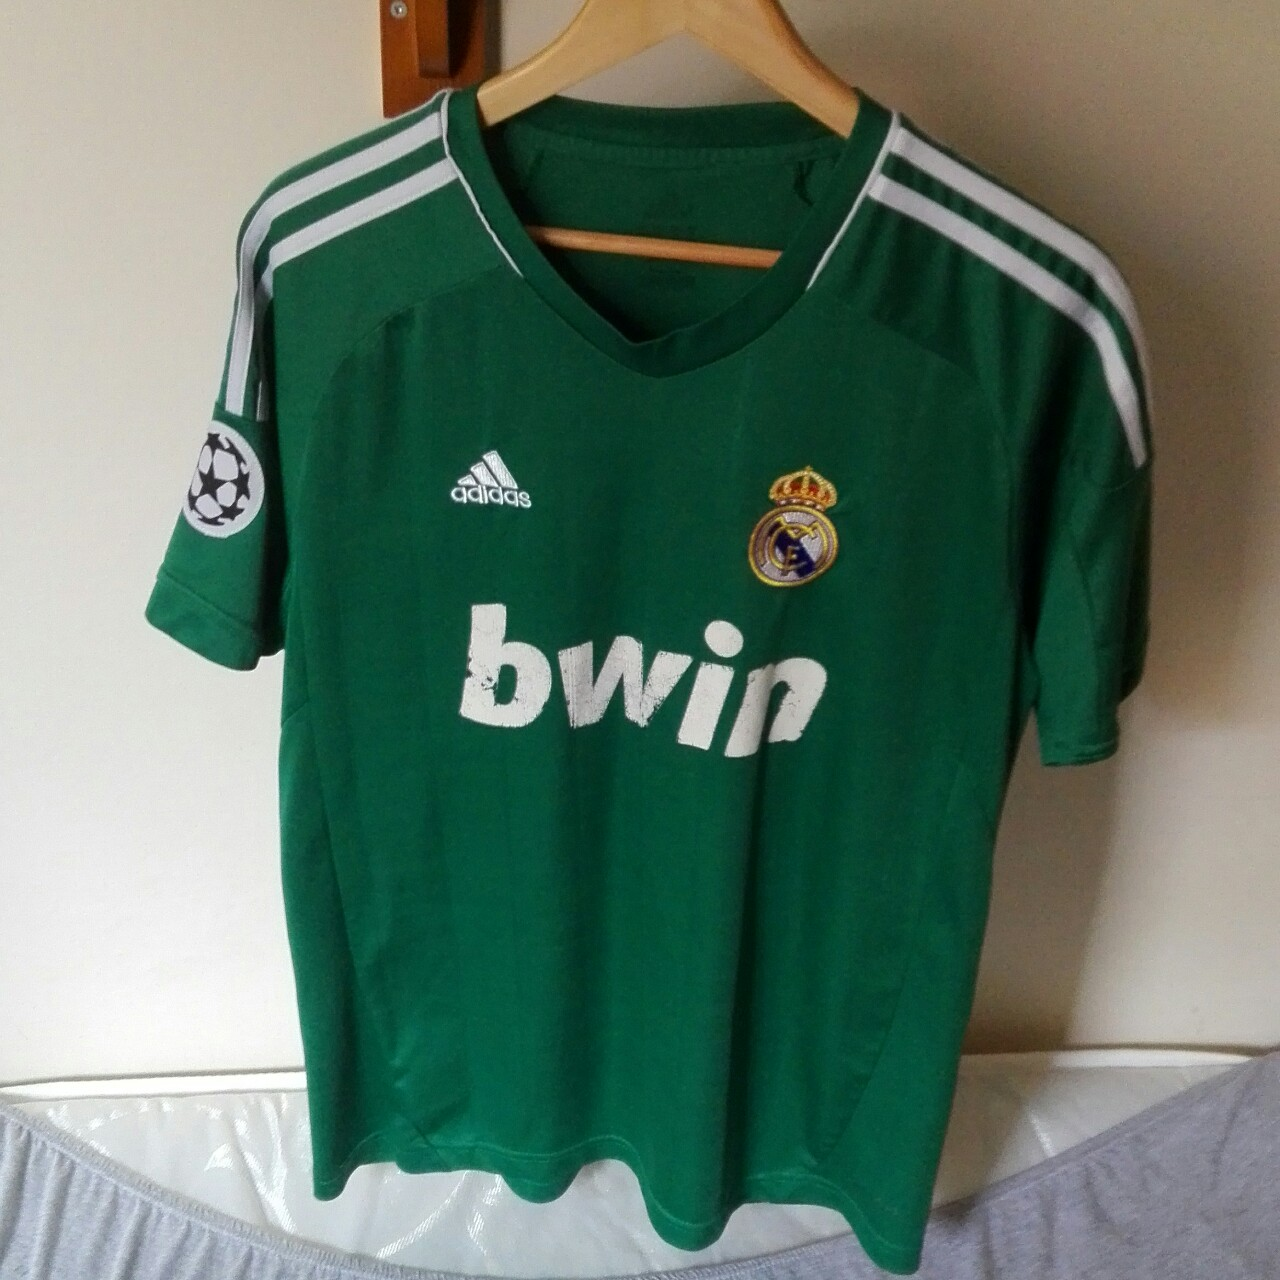 on sale 9af0c 3bb6a Real Madrid FC third kit strip jersey This green... - Depop